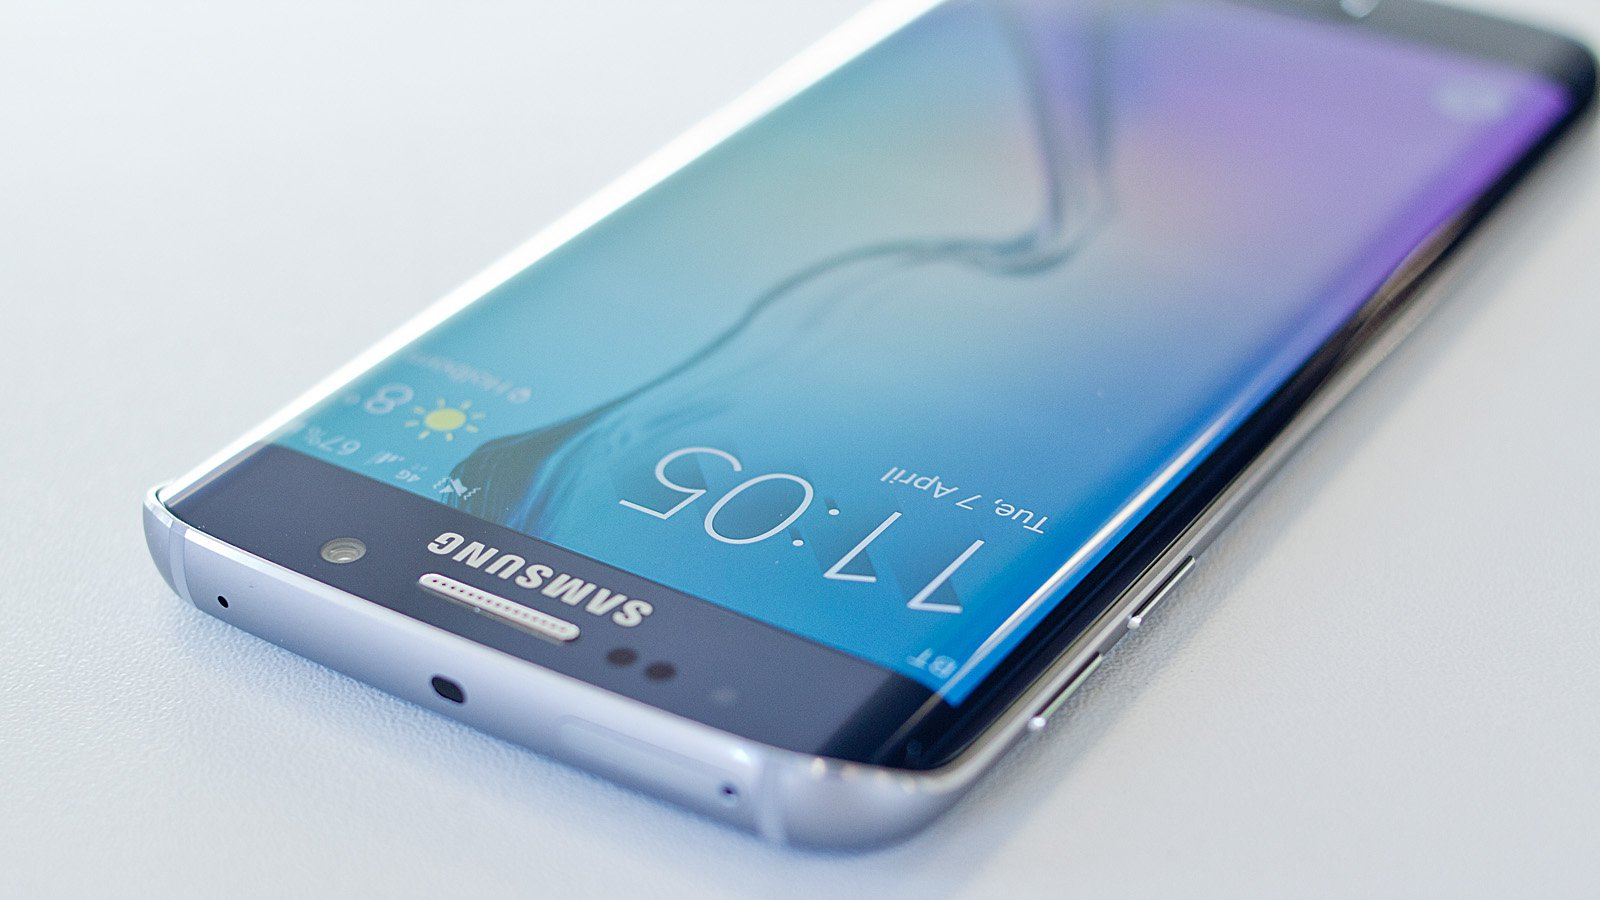 Samsung to launch Galaxy S7, Galaxy S7 Edge this month